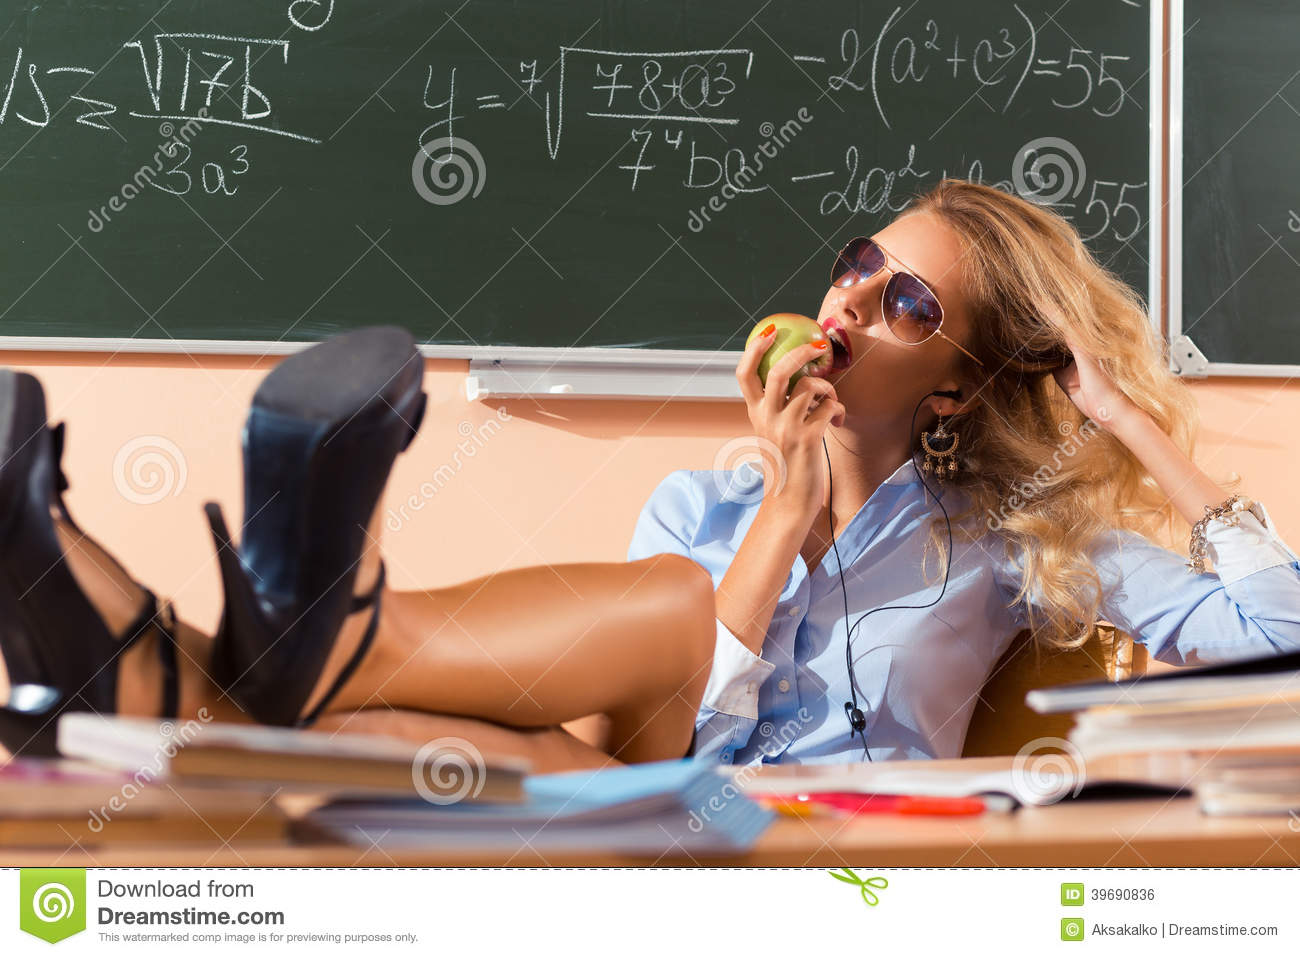 Beautiful Young Sexy Teacher Stock Photo - Image: 39690836: http://www.dreamstime.com/royalty-free-stock-image-beautiful-young-sexy-teacher-resting-classes-image39690836